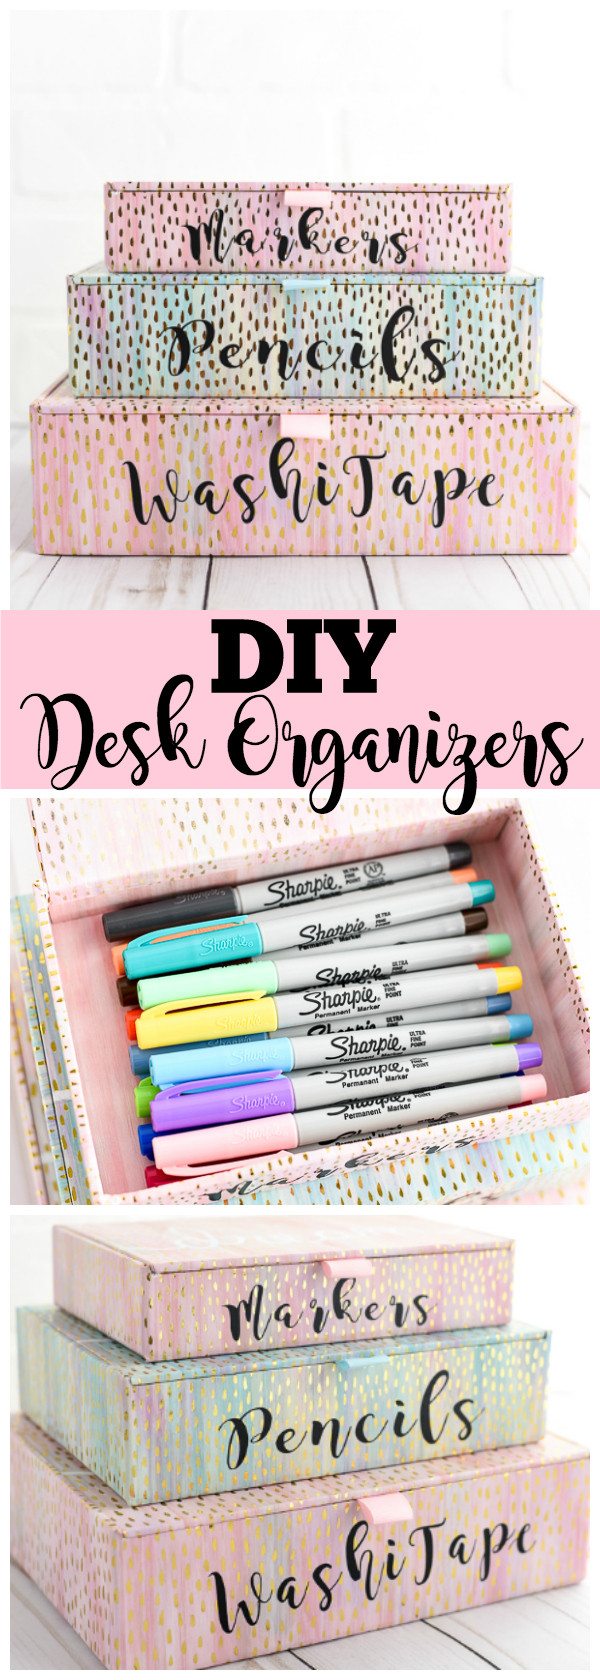 Best ideas about DIY Office Organizers . Save or Pin DIY Desk Organizers Now.